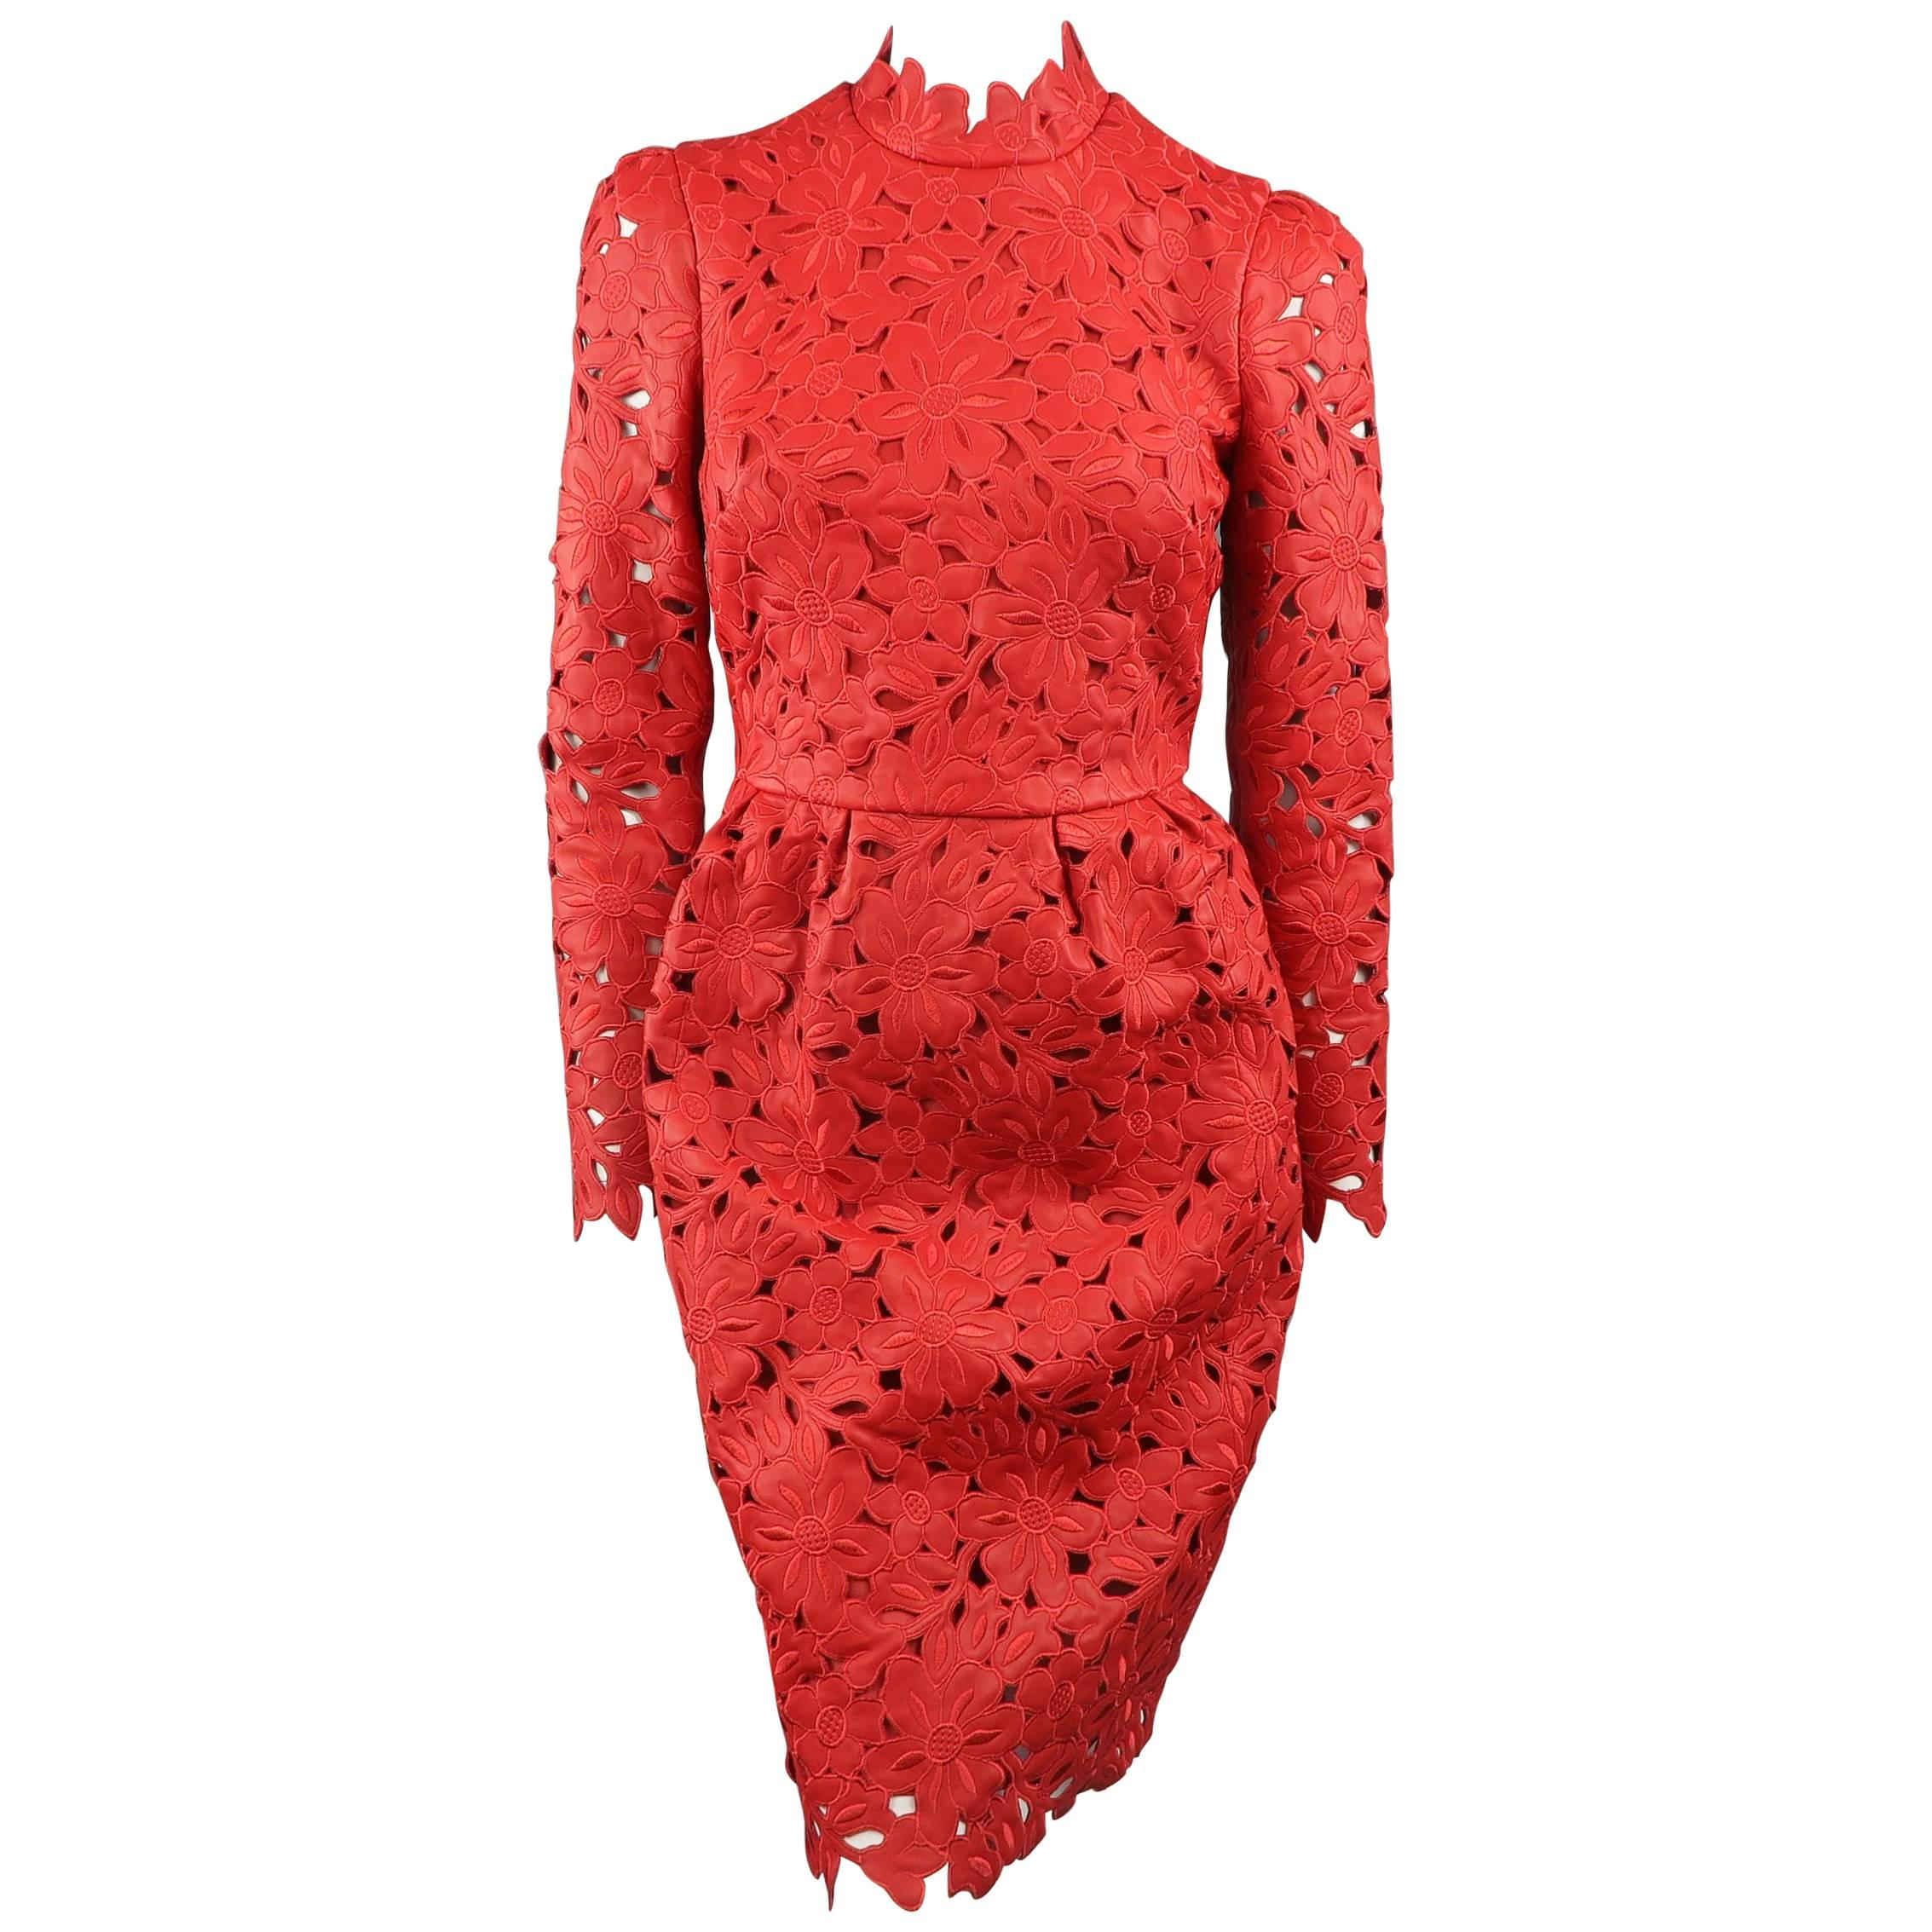 939c569e13d Valentino Red Leather Dress - 50th Anniversary - Fall 2012 Runway - Retail   9800 For Sale at 1stdibs